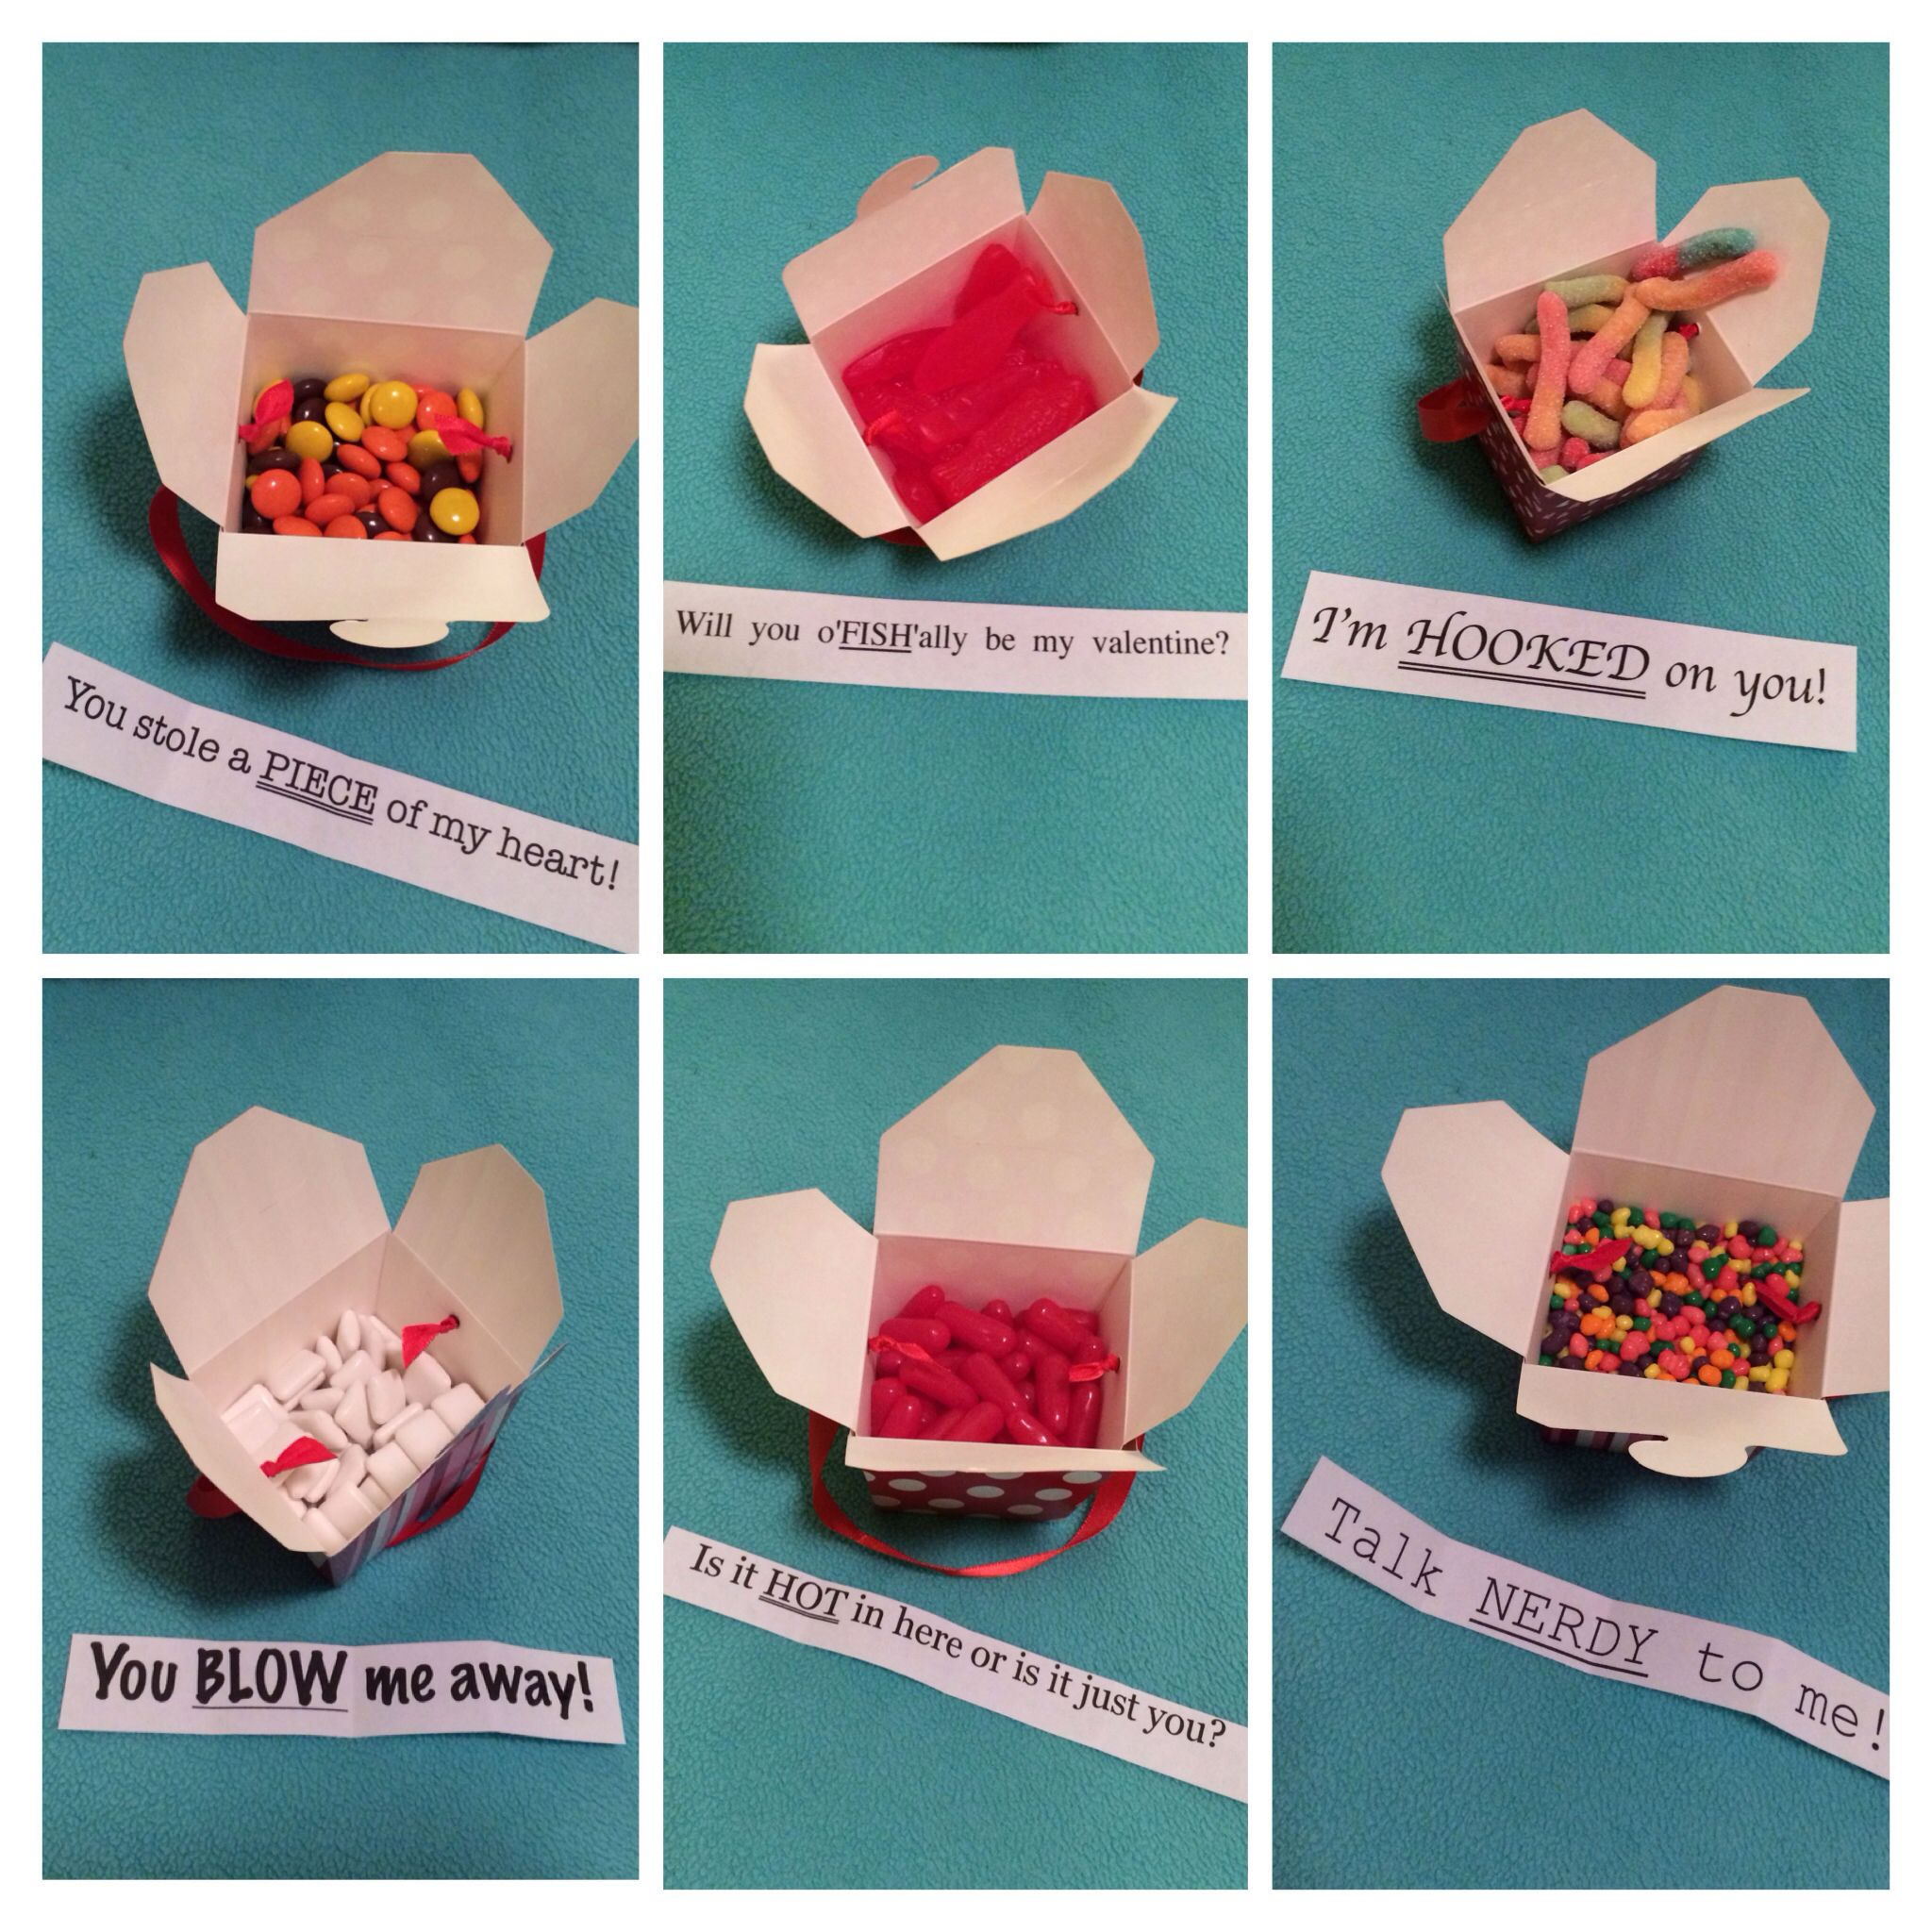 Sweet little valentine treats and notes for your boyfriend for Cute small valentines day gifts